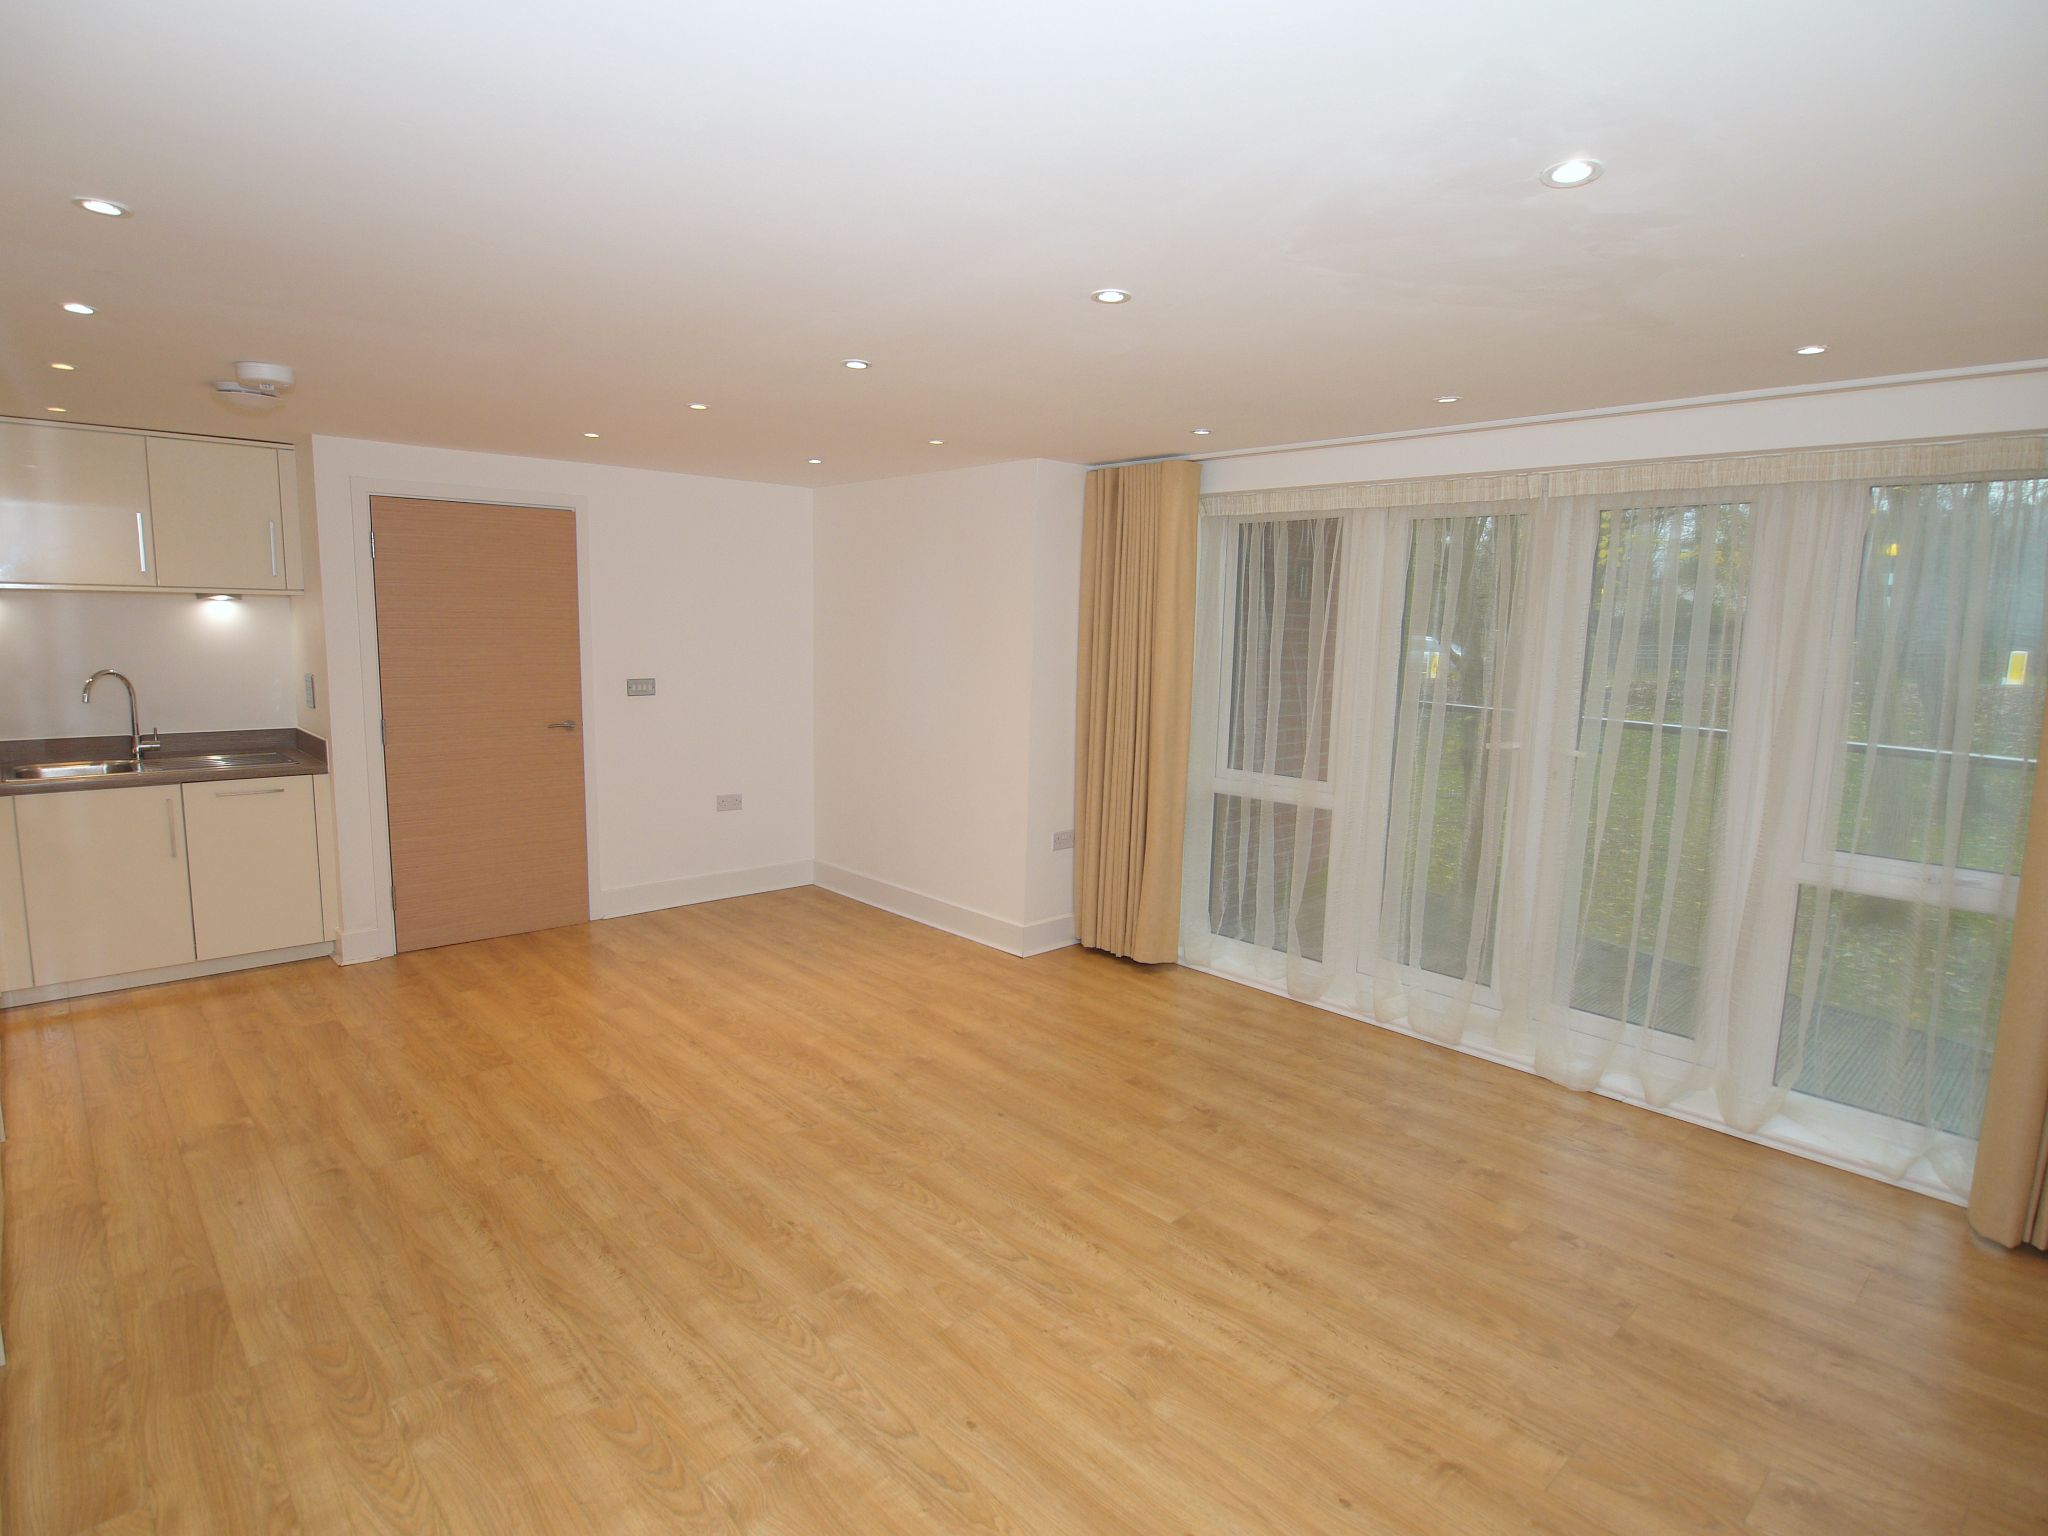 2 bedroom apartment For Sale in Sevenoaks - Photograph 5